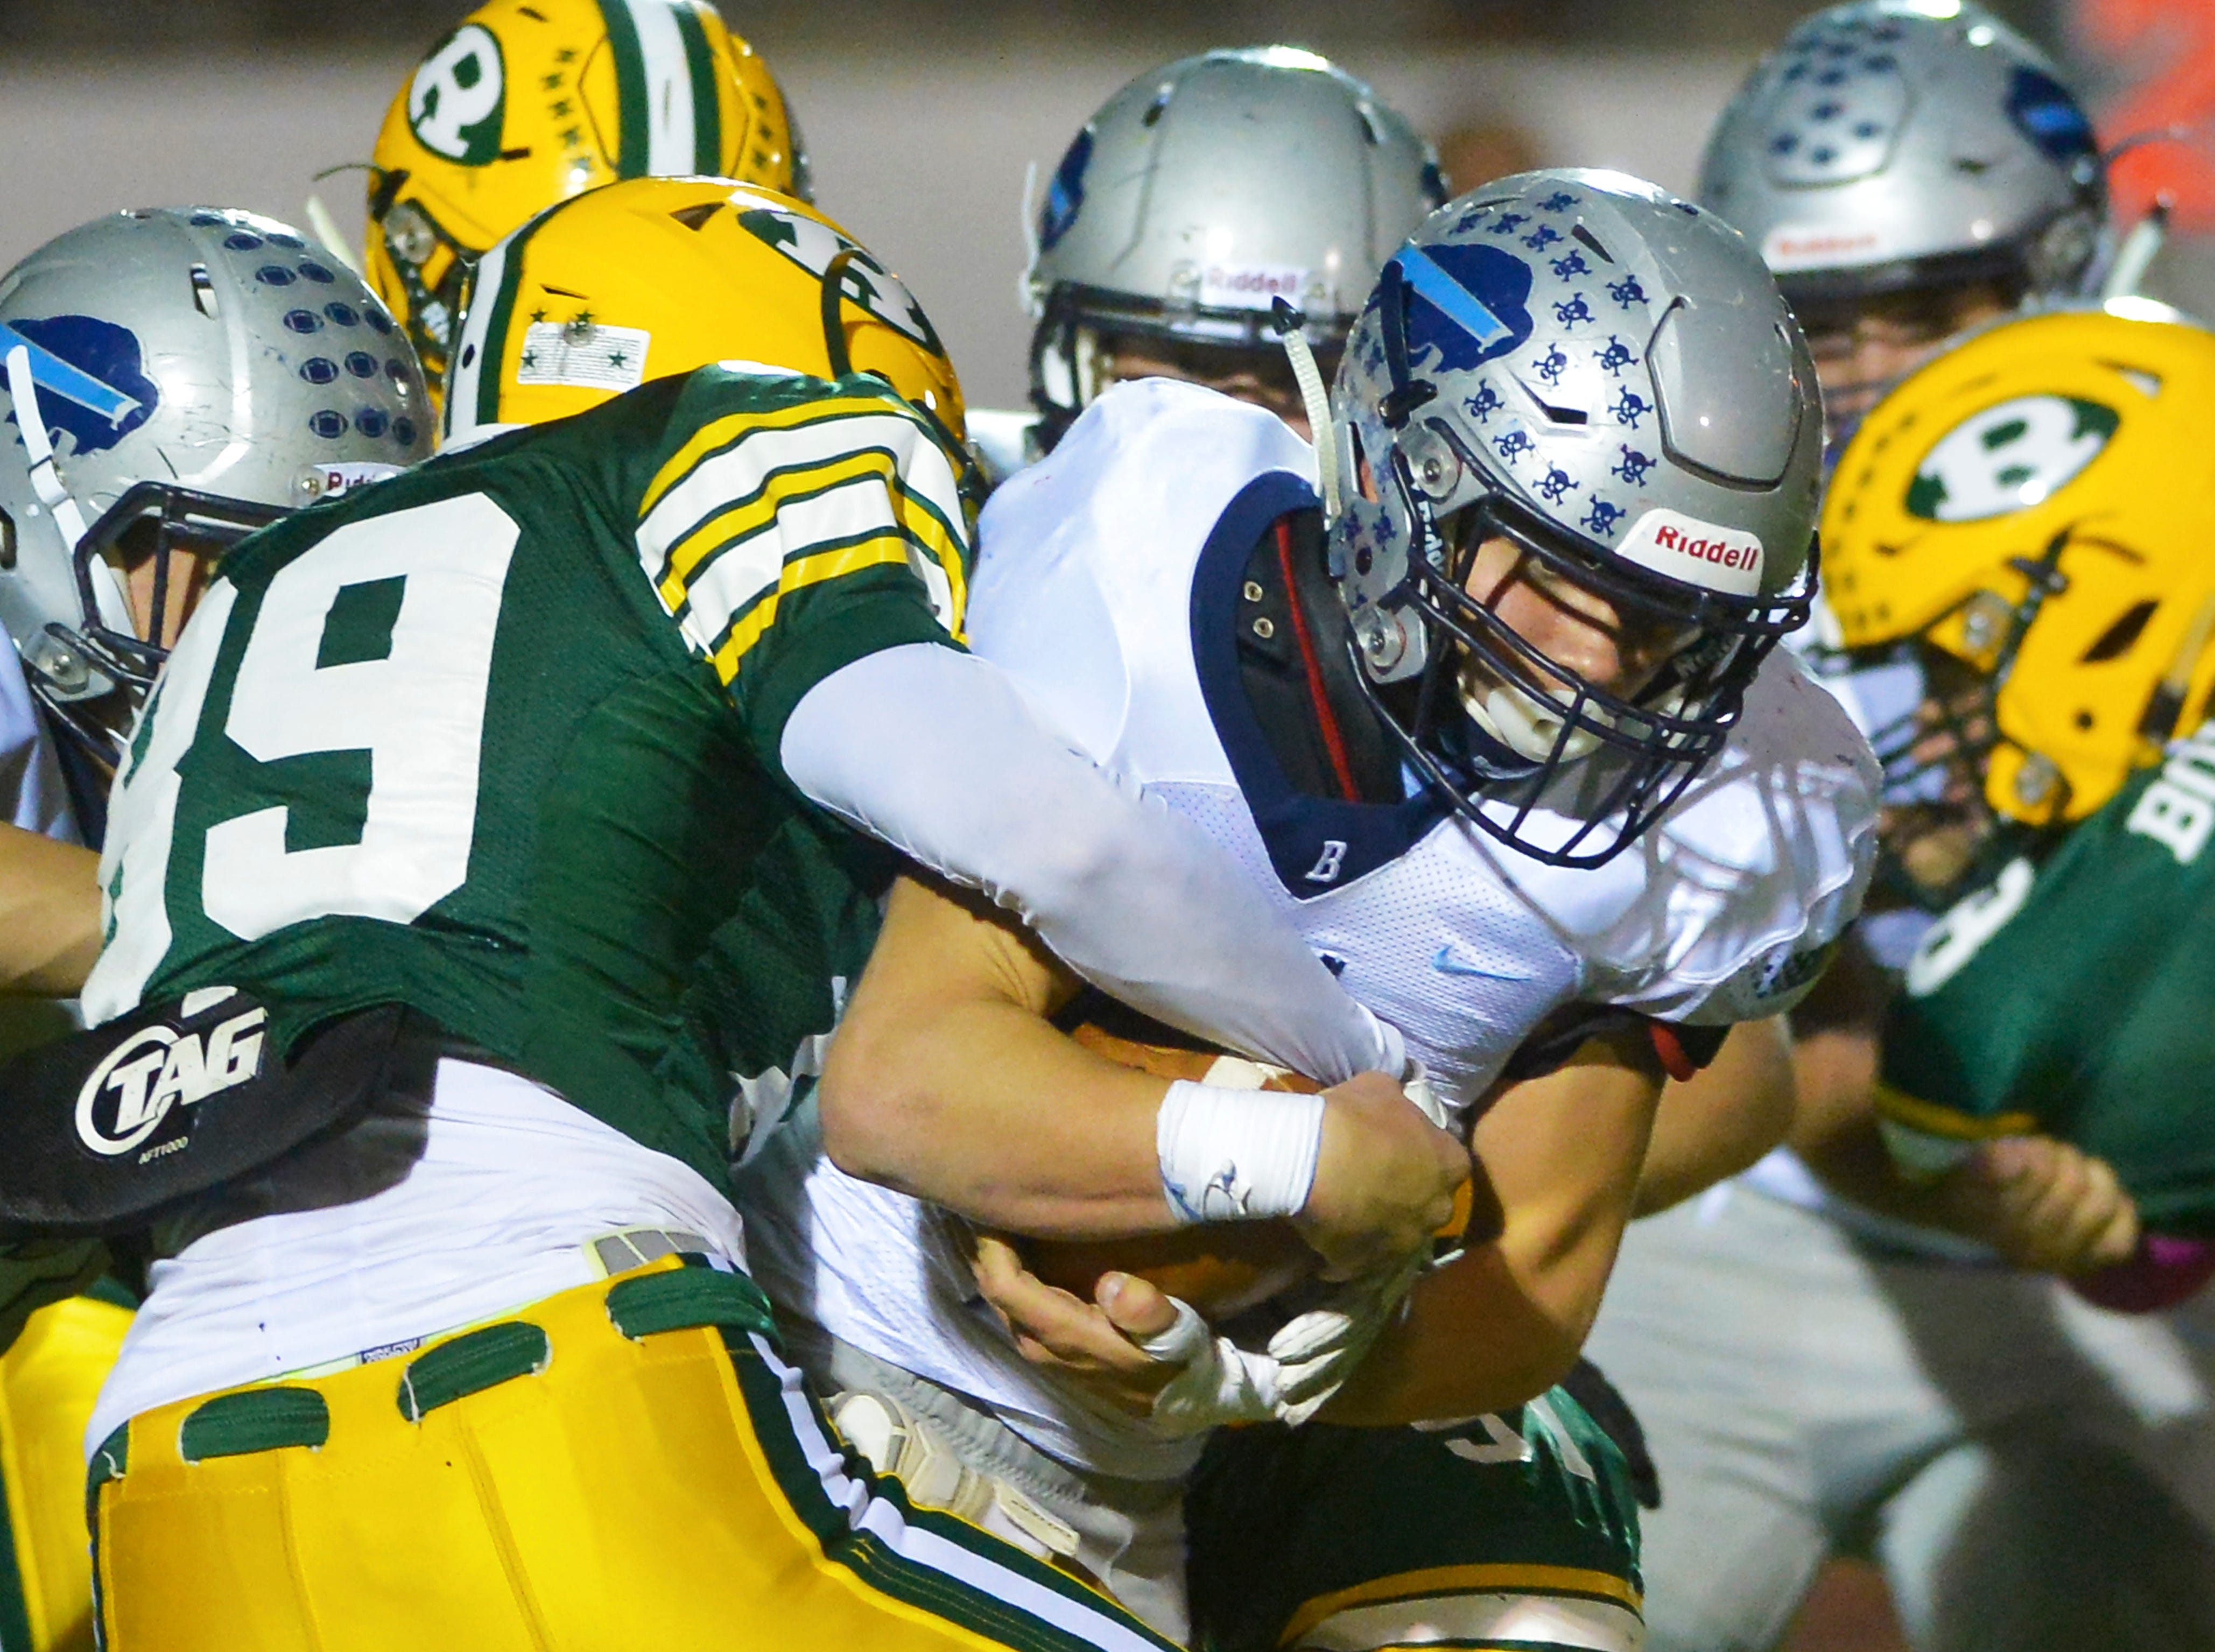 Great Falls High's Ben Held carries the ball during the crosstown football game between Great Falls High and CMR on Friday night at Memorial Stadium.